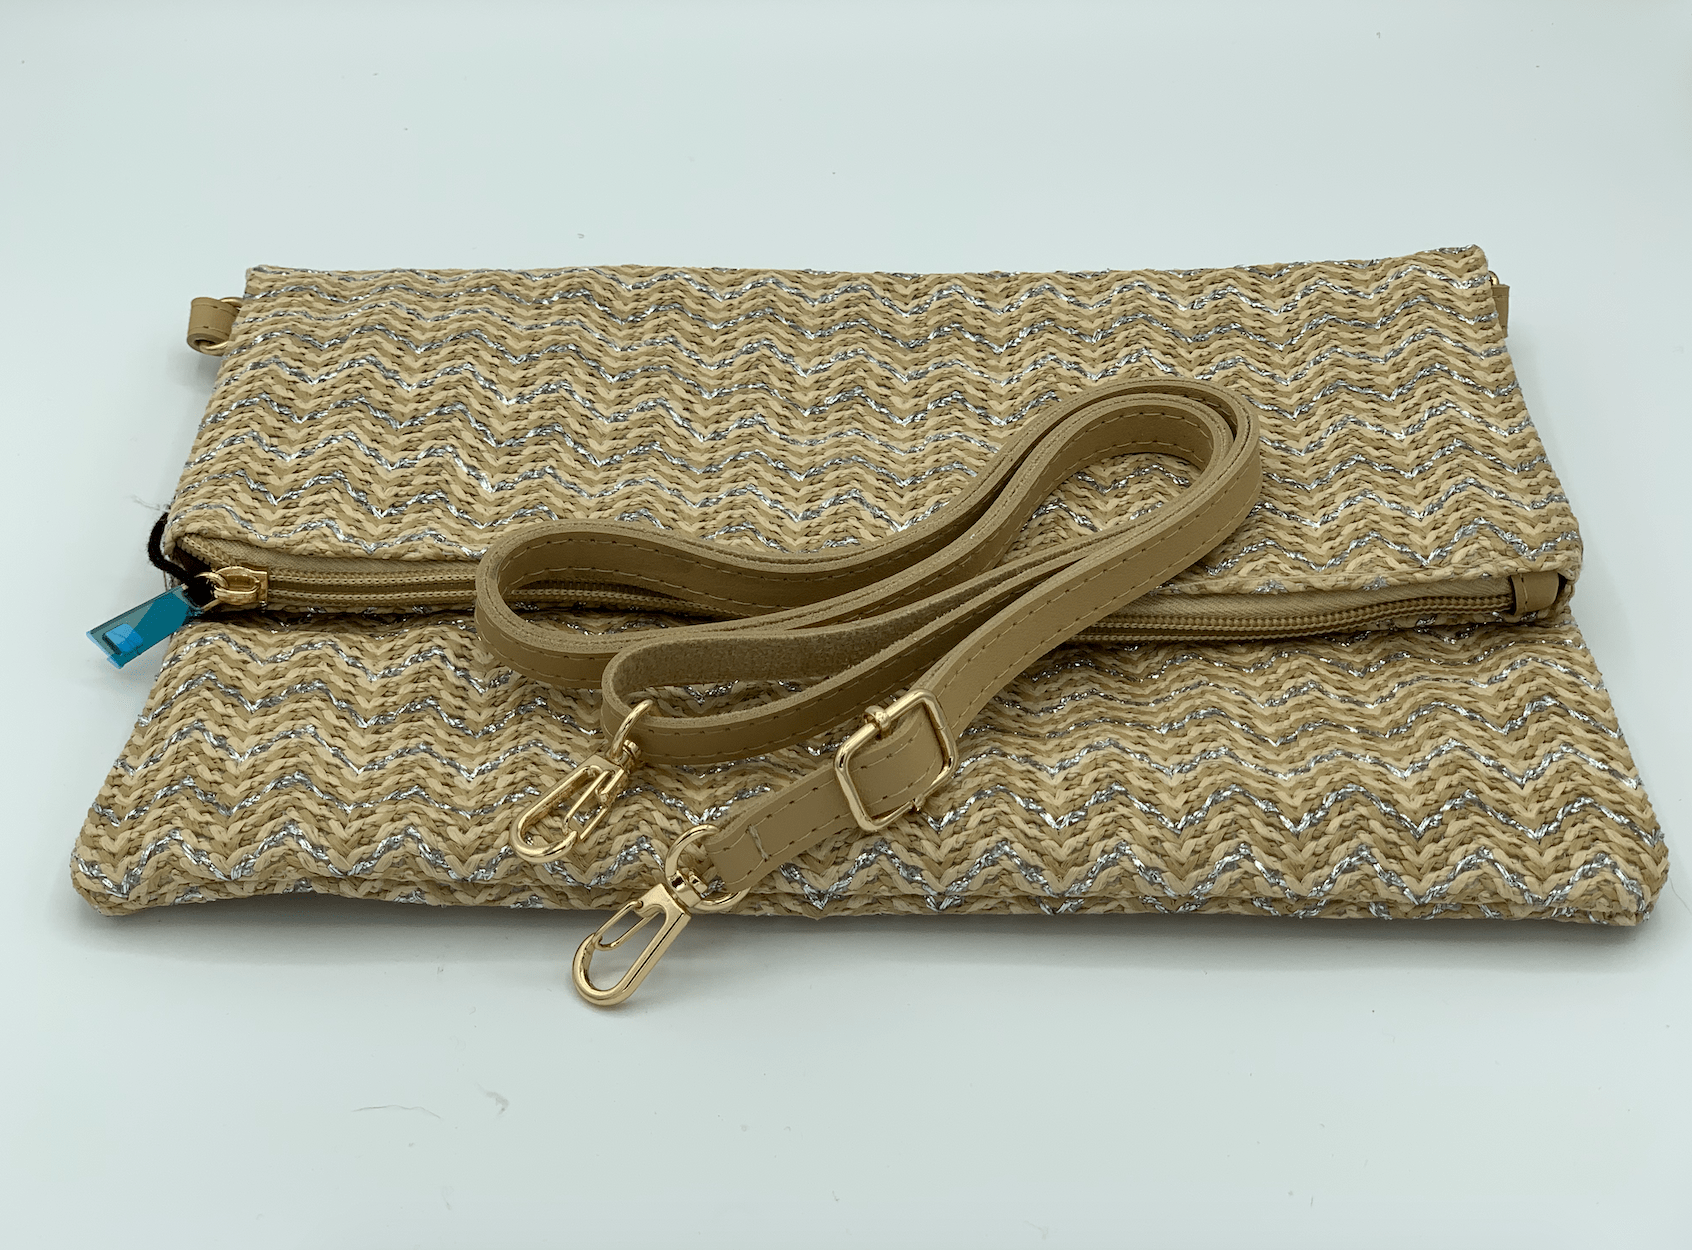 Silver and Gold Clutch Bag